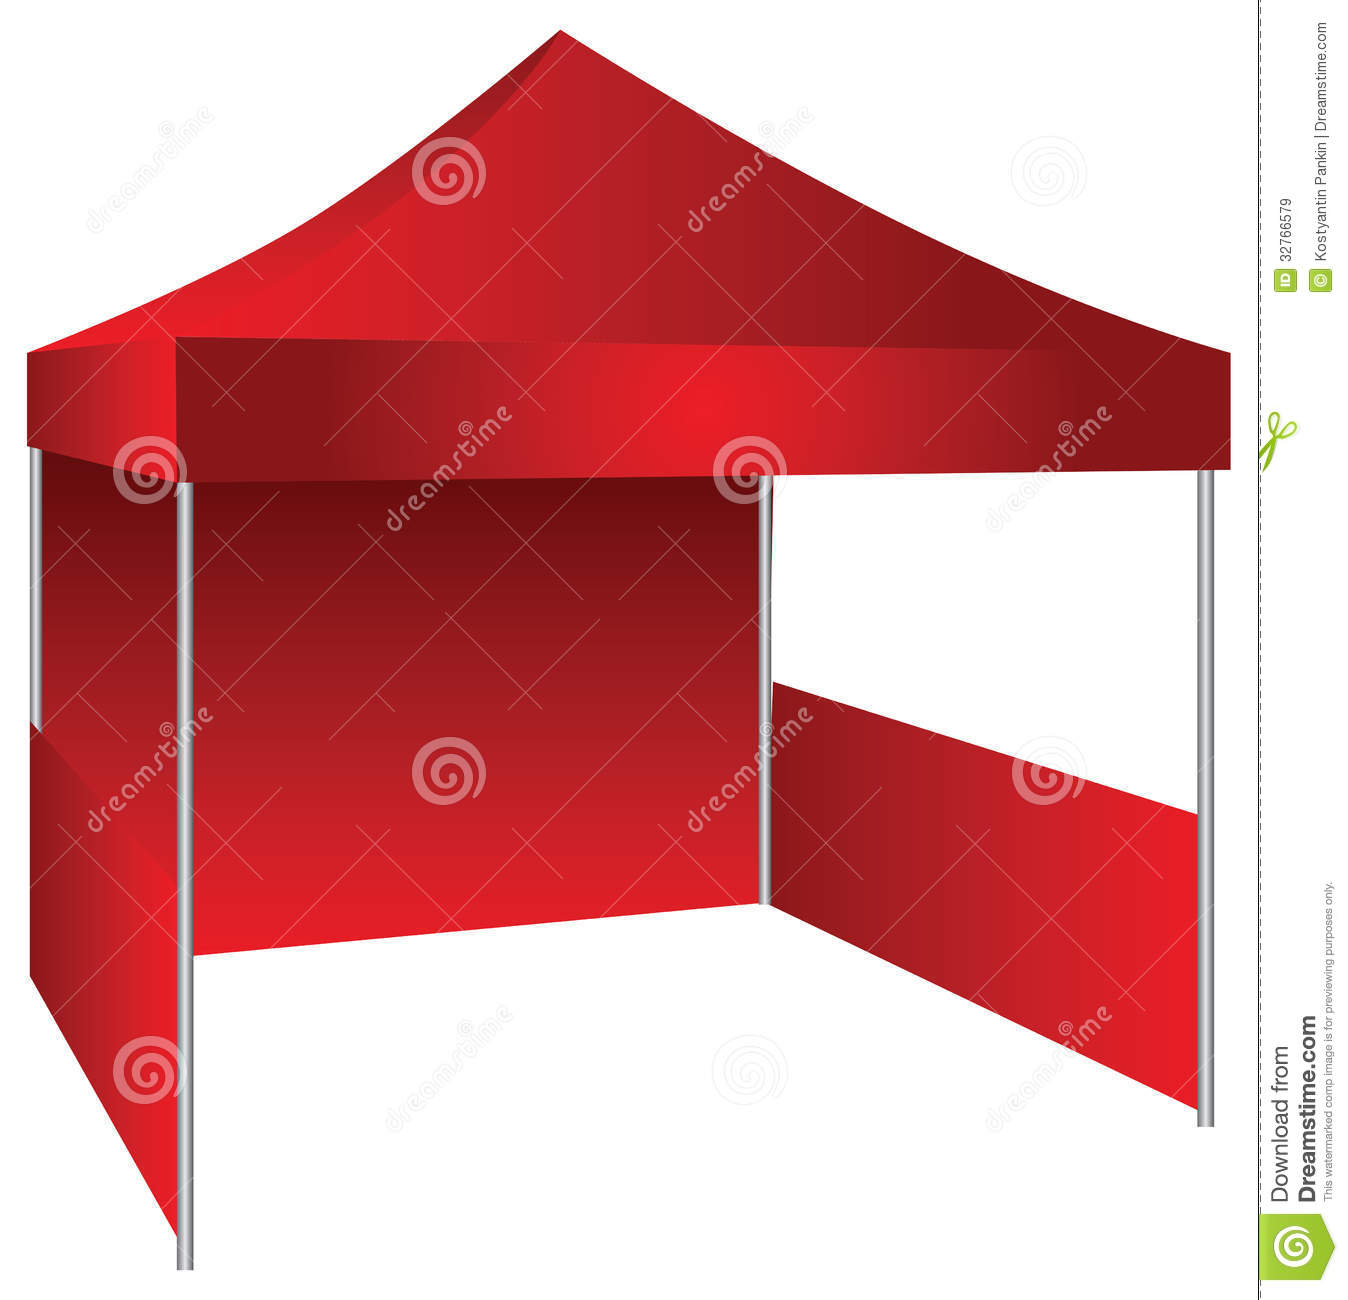 The concession stand in the form of a canopy with possible use as an exhibition canopy. Vector illustration.  sc 1 st  Dreamstime.com & Exhibition tent stock vector. Illustration of natural - 32766579